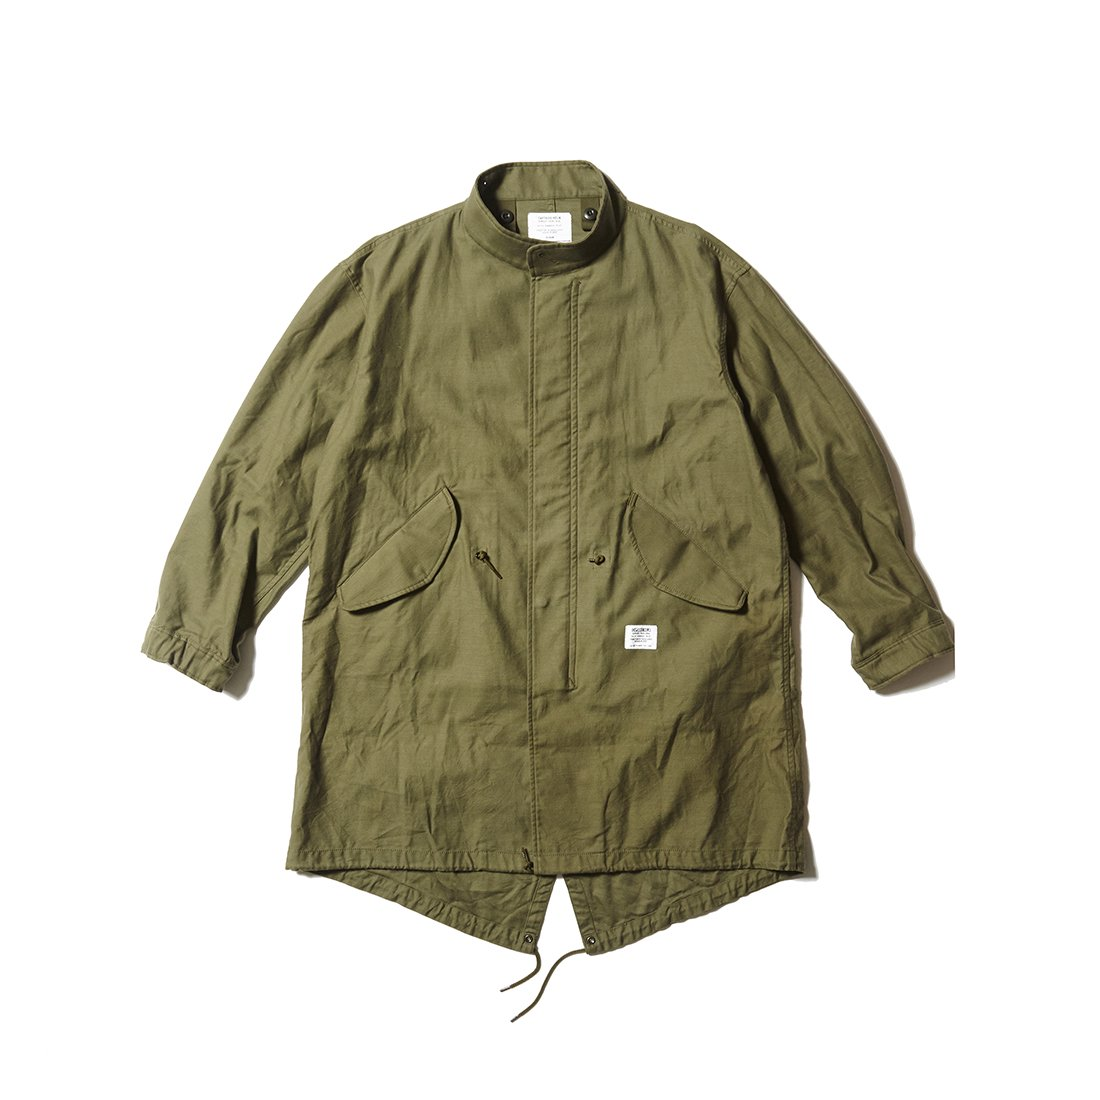 CAPTAINS HELM #FISH TAIL MILITARY JKT -SOLID